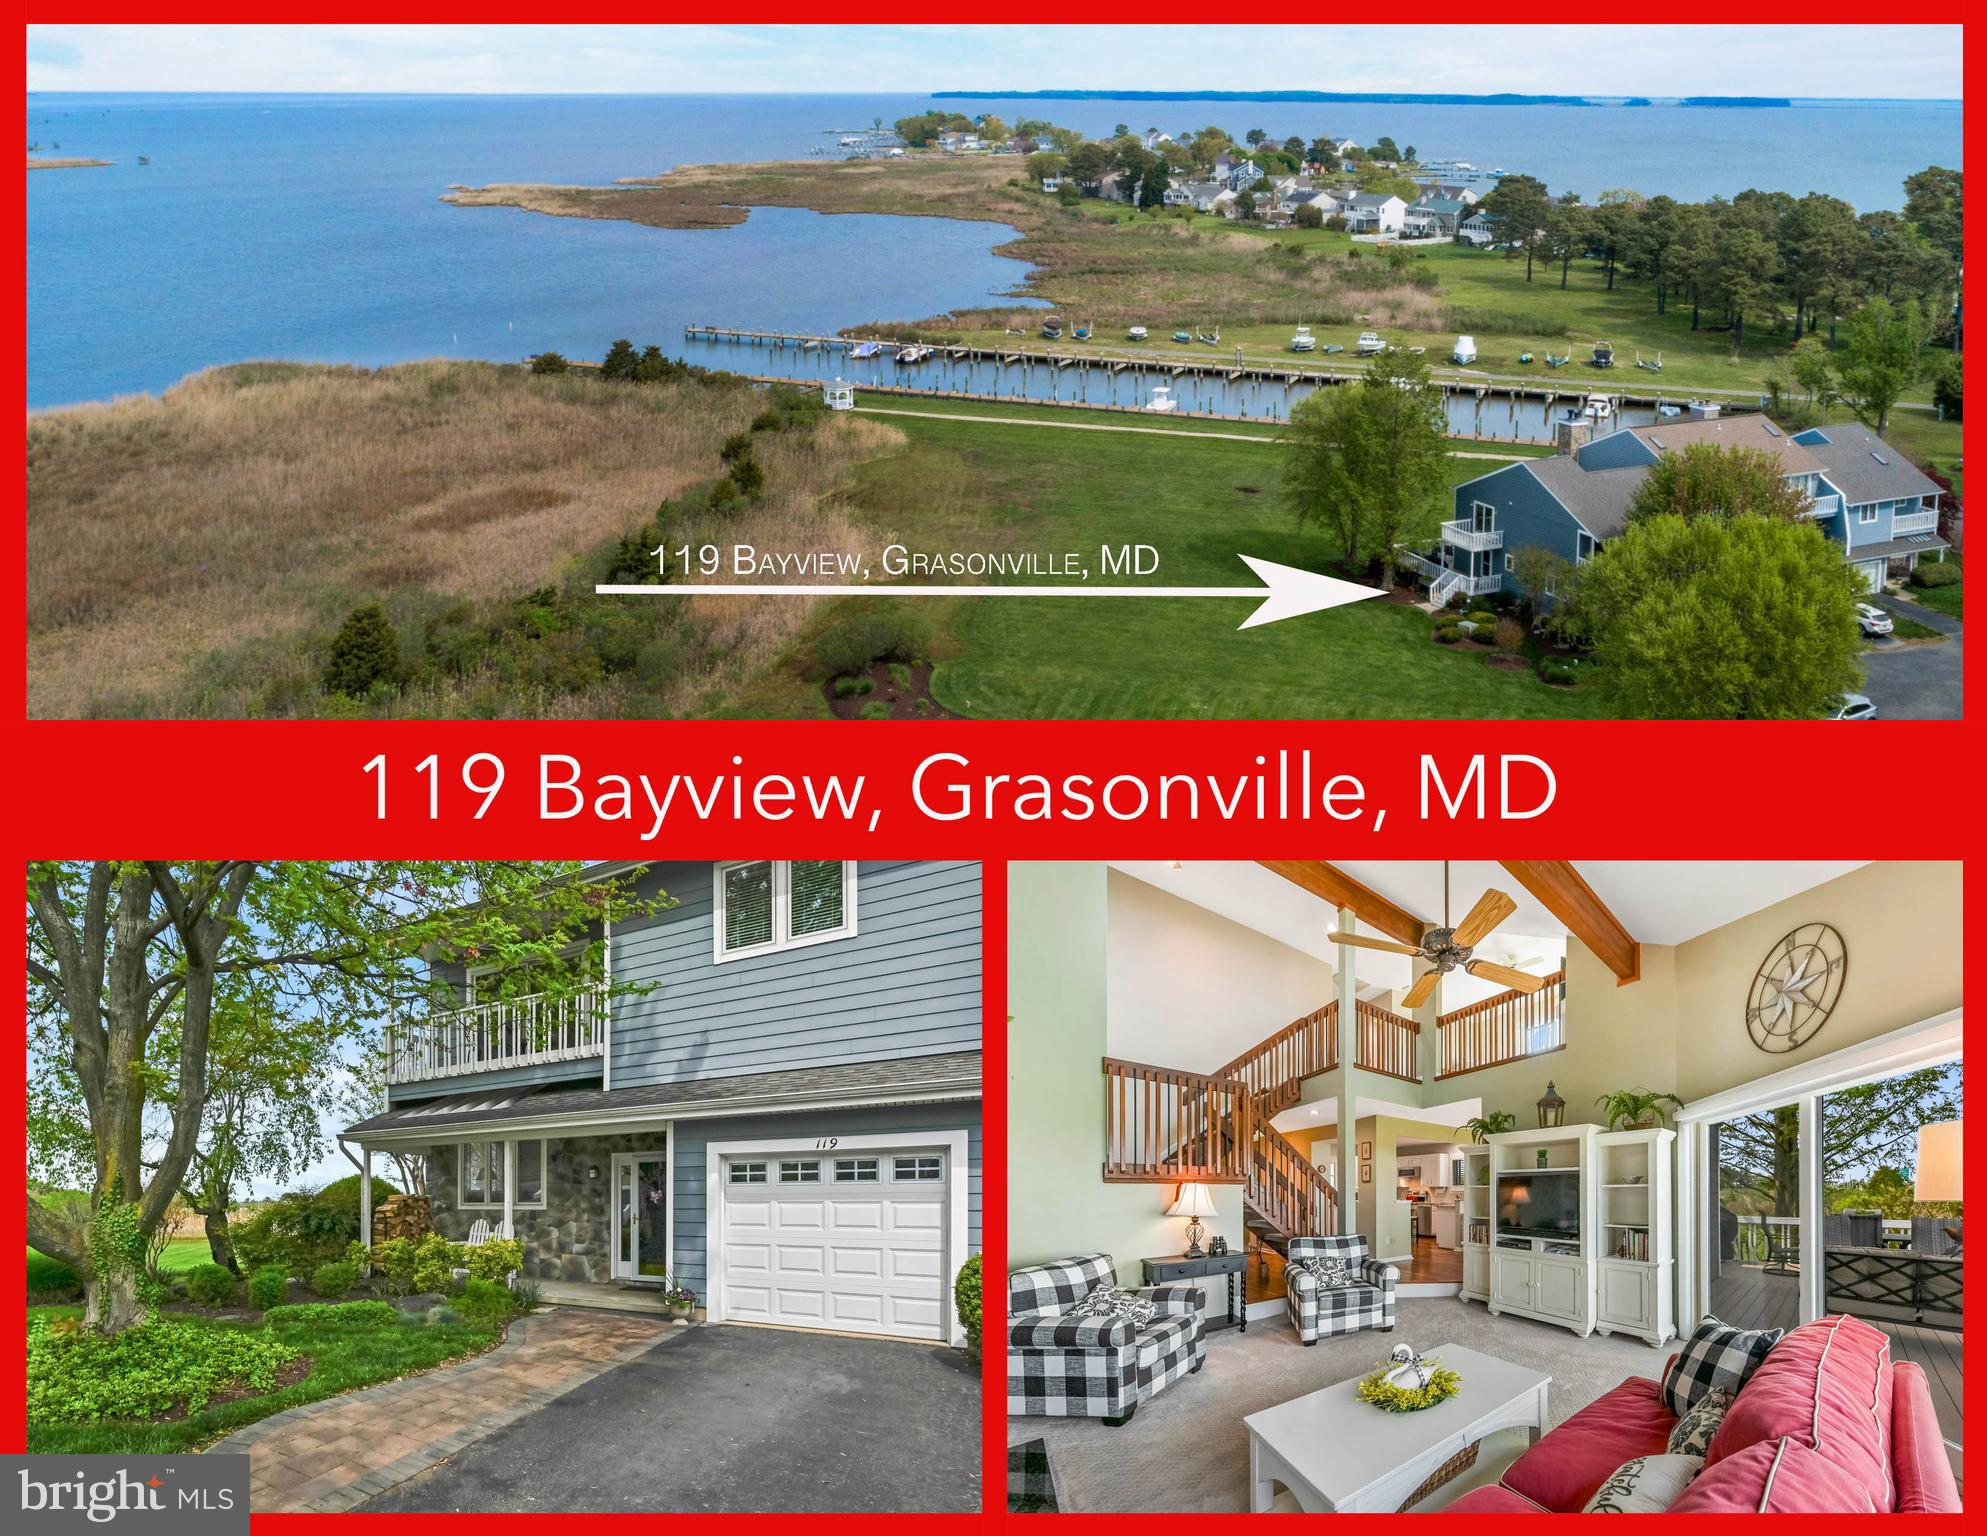 WATERFRONT * Located in the quaint Bayview At Kent Narrows community overlooking Muddy Creek and the